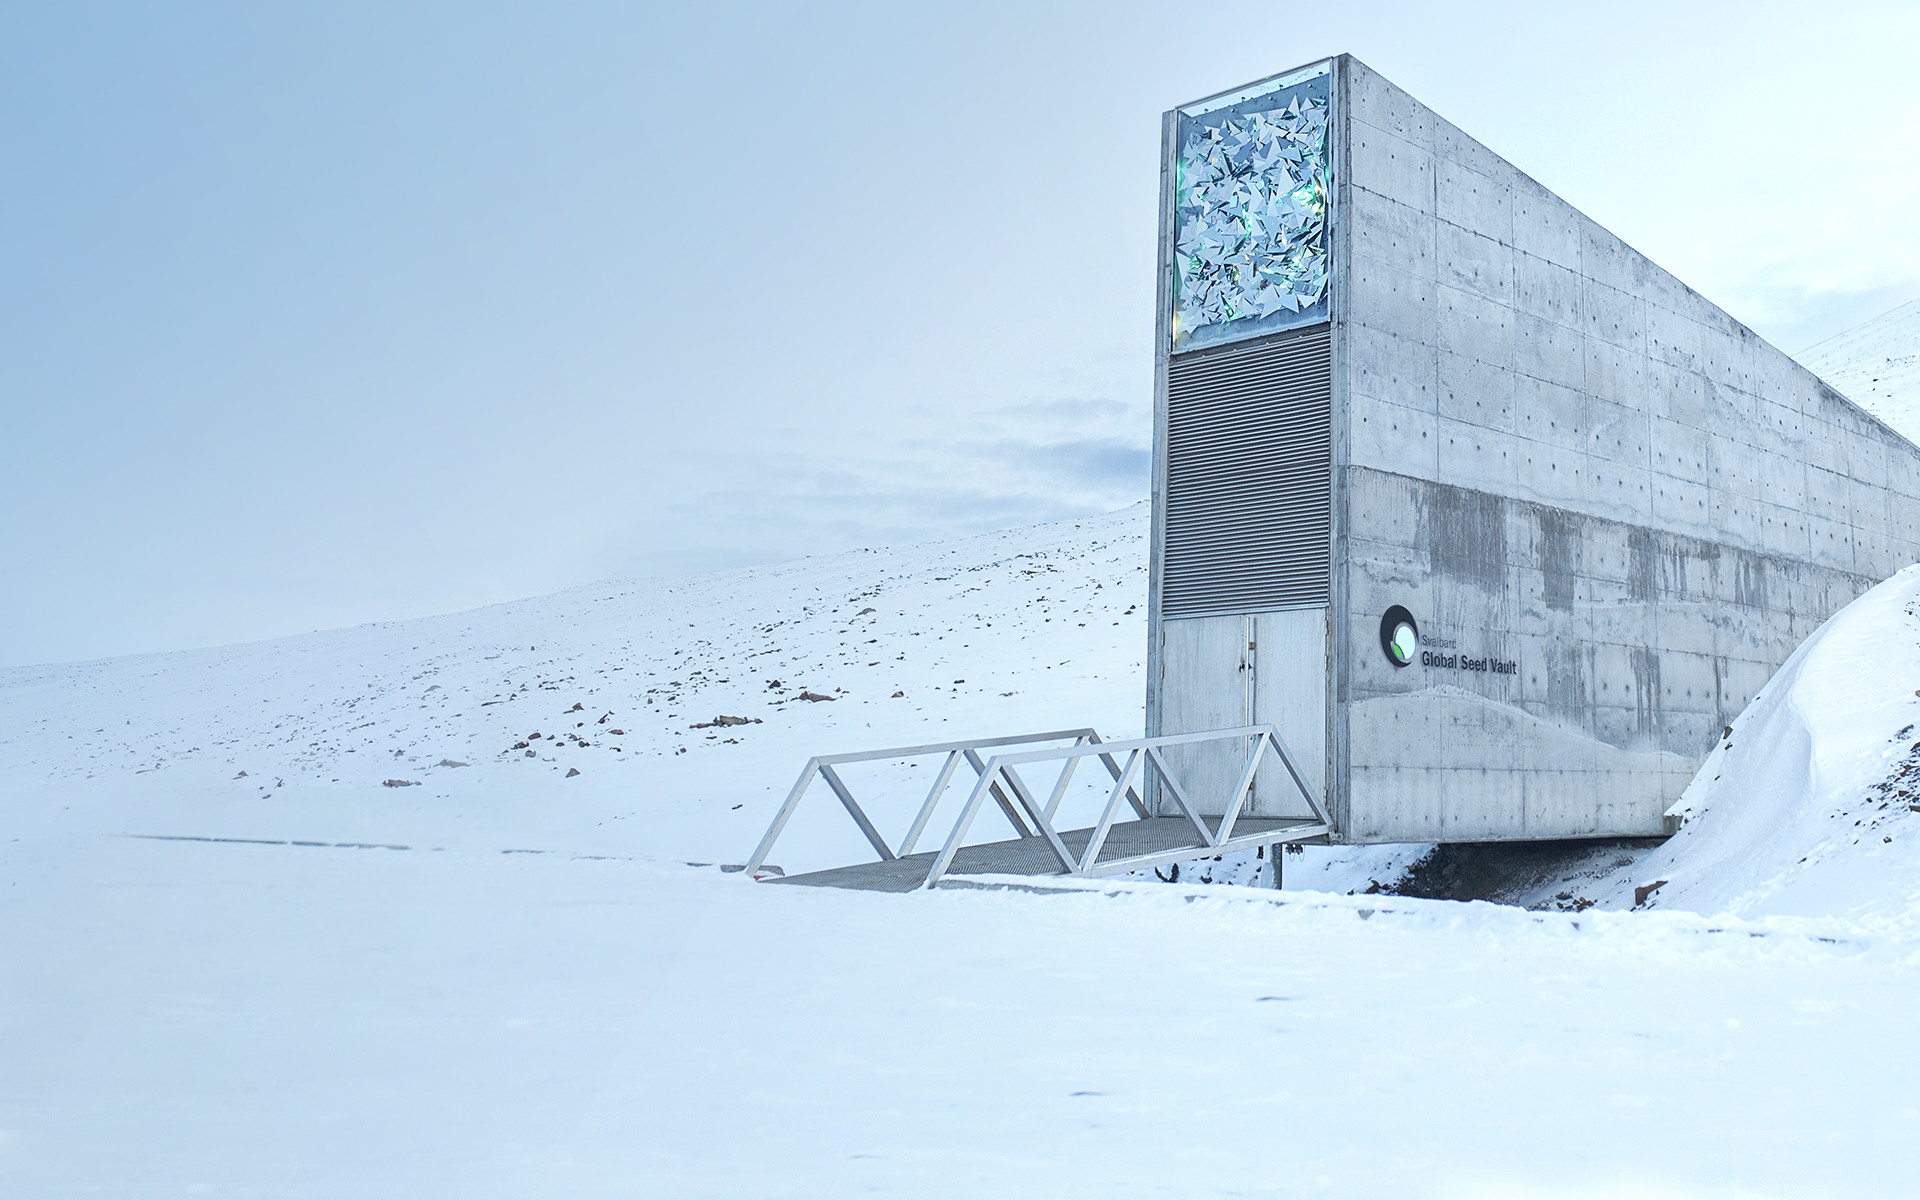 The Svalbard Global Seed Bank